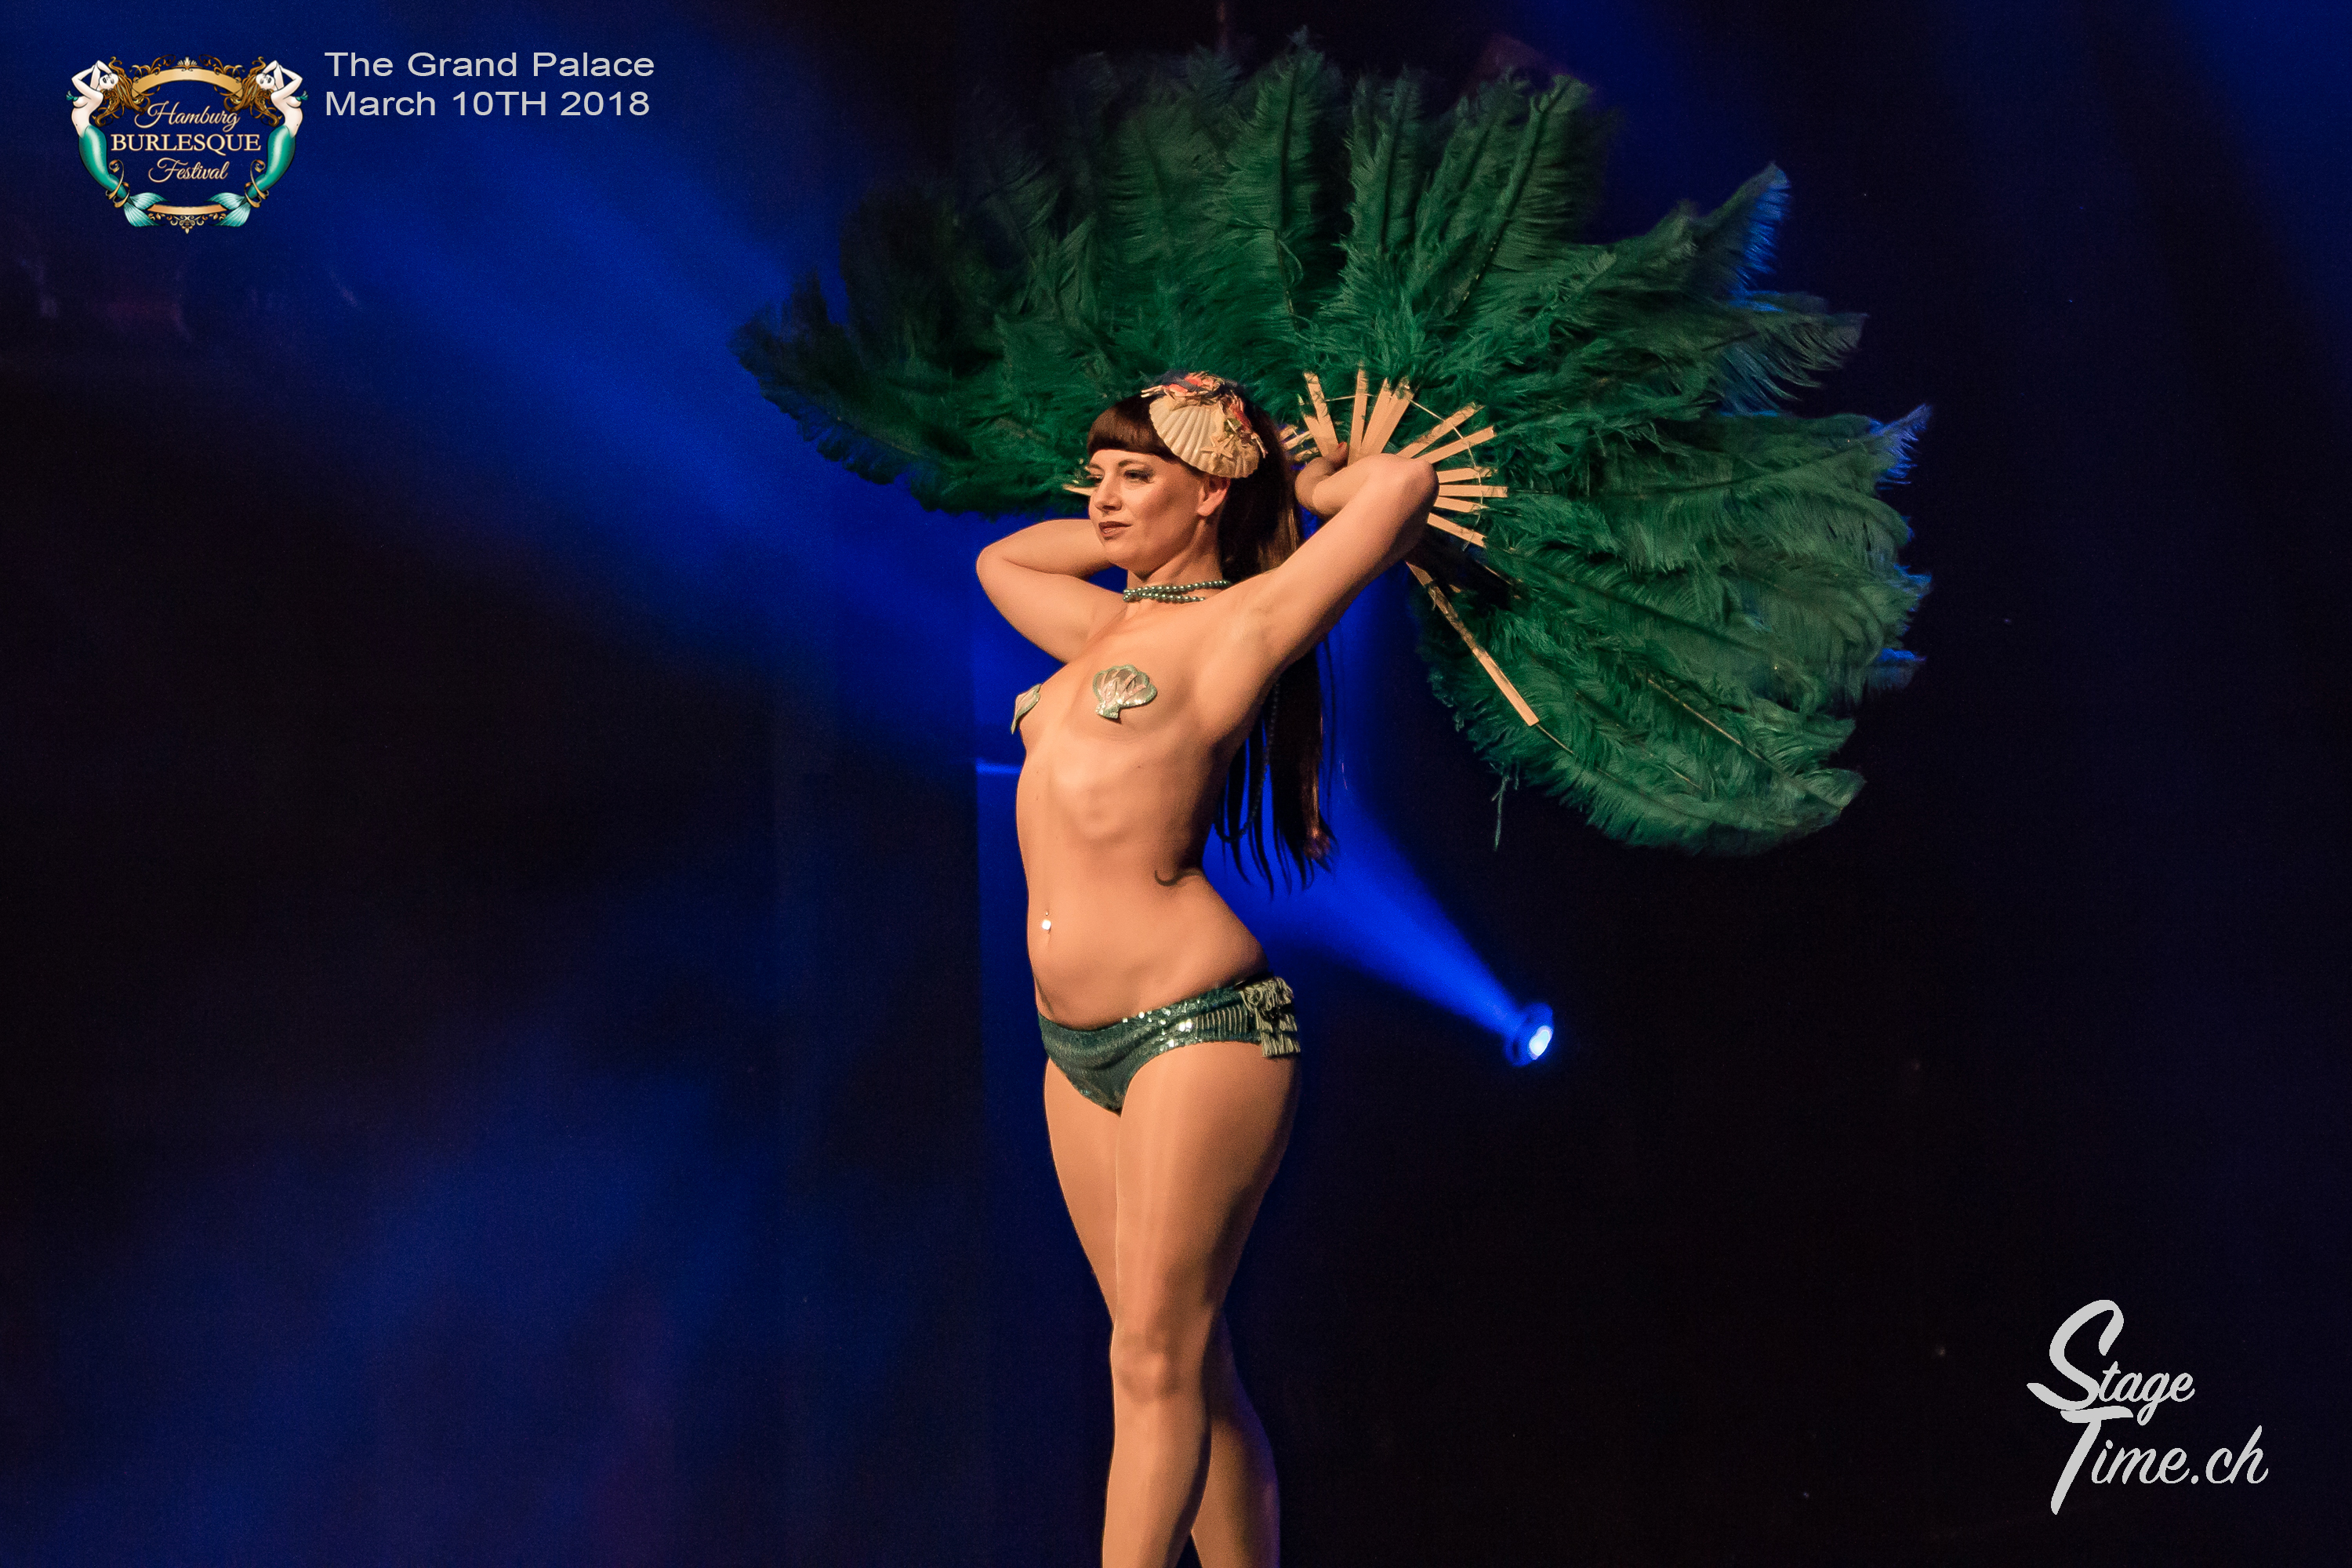 Hamburg_Burlesque_Festival_The_Grand_Palace__📷_Christoph_Gurtner_I_stagetime.ch-38